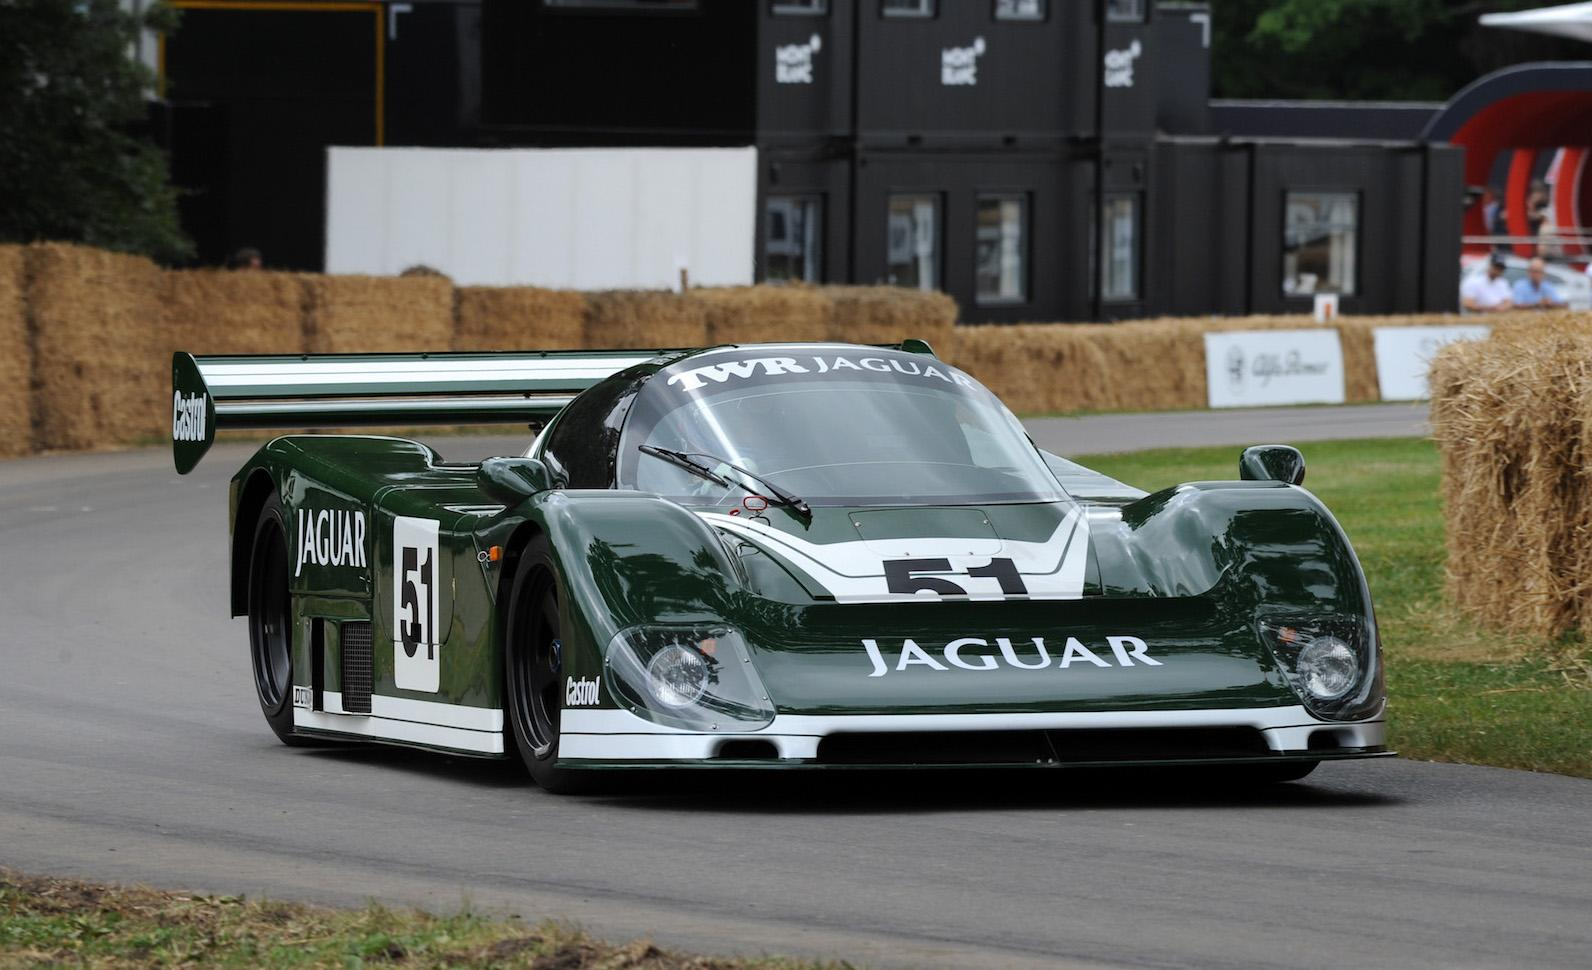 Le Mans XJ220C and Group C Jaguars at XK70 festival